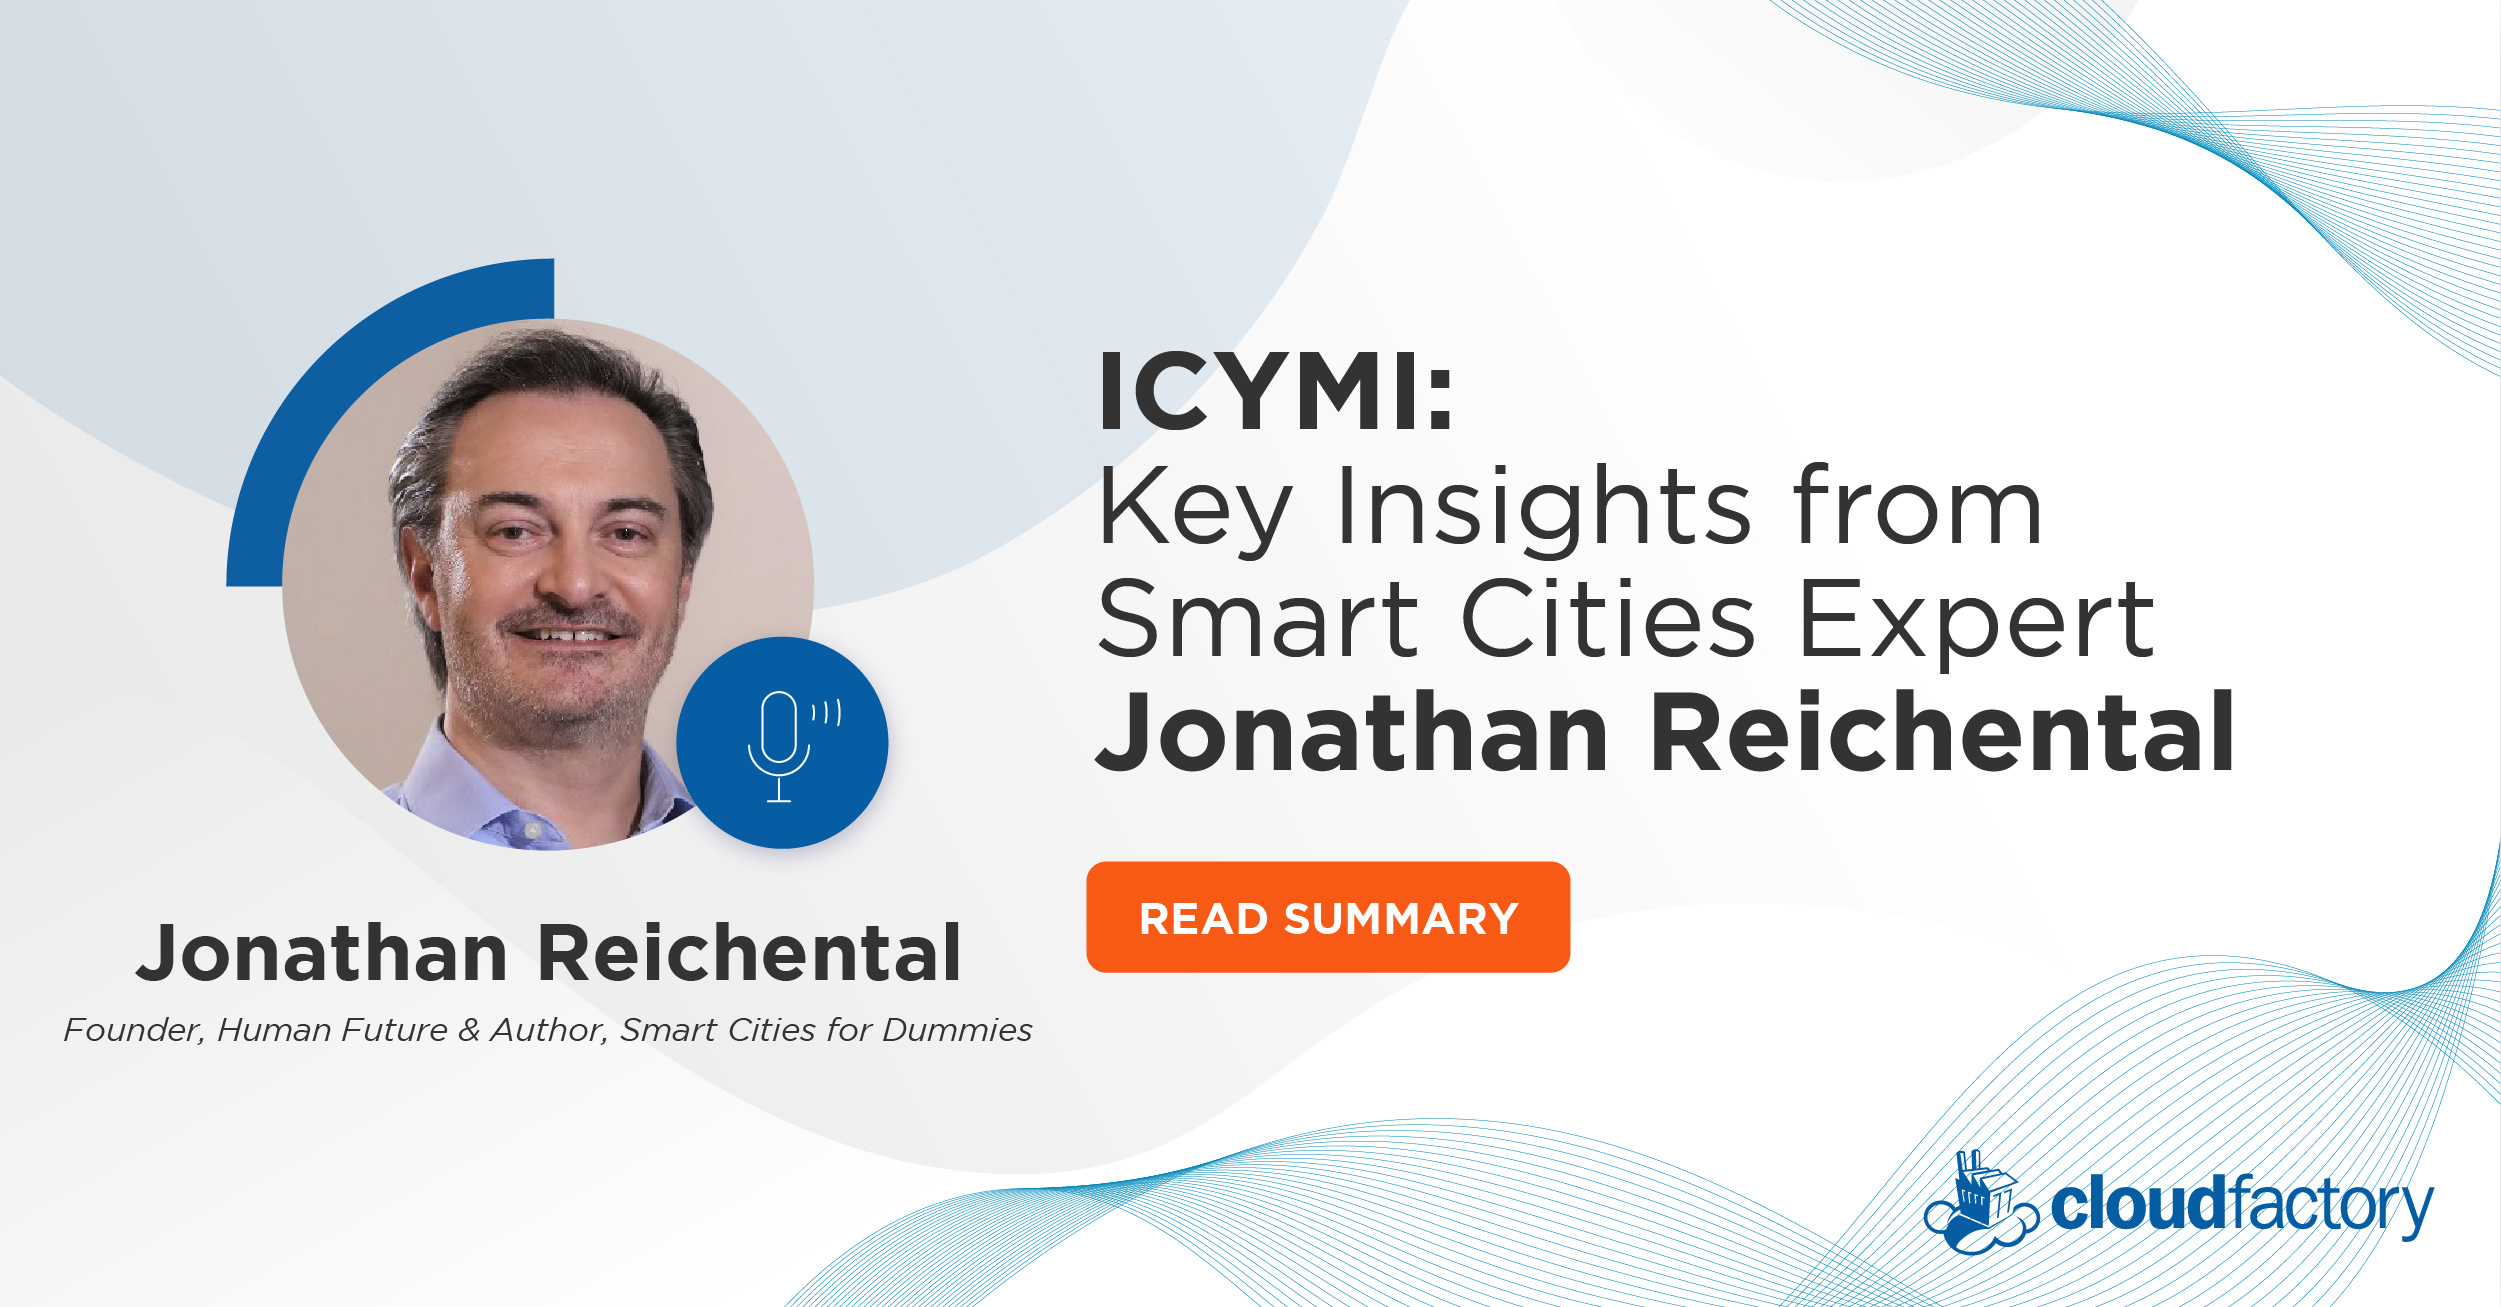 ICYMI: Key Insights from Smart Cities Expert Jonathan Reichental